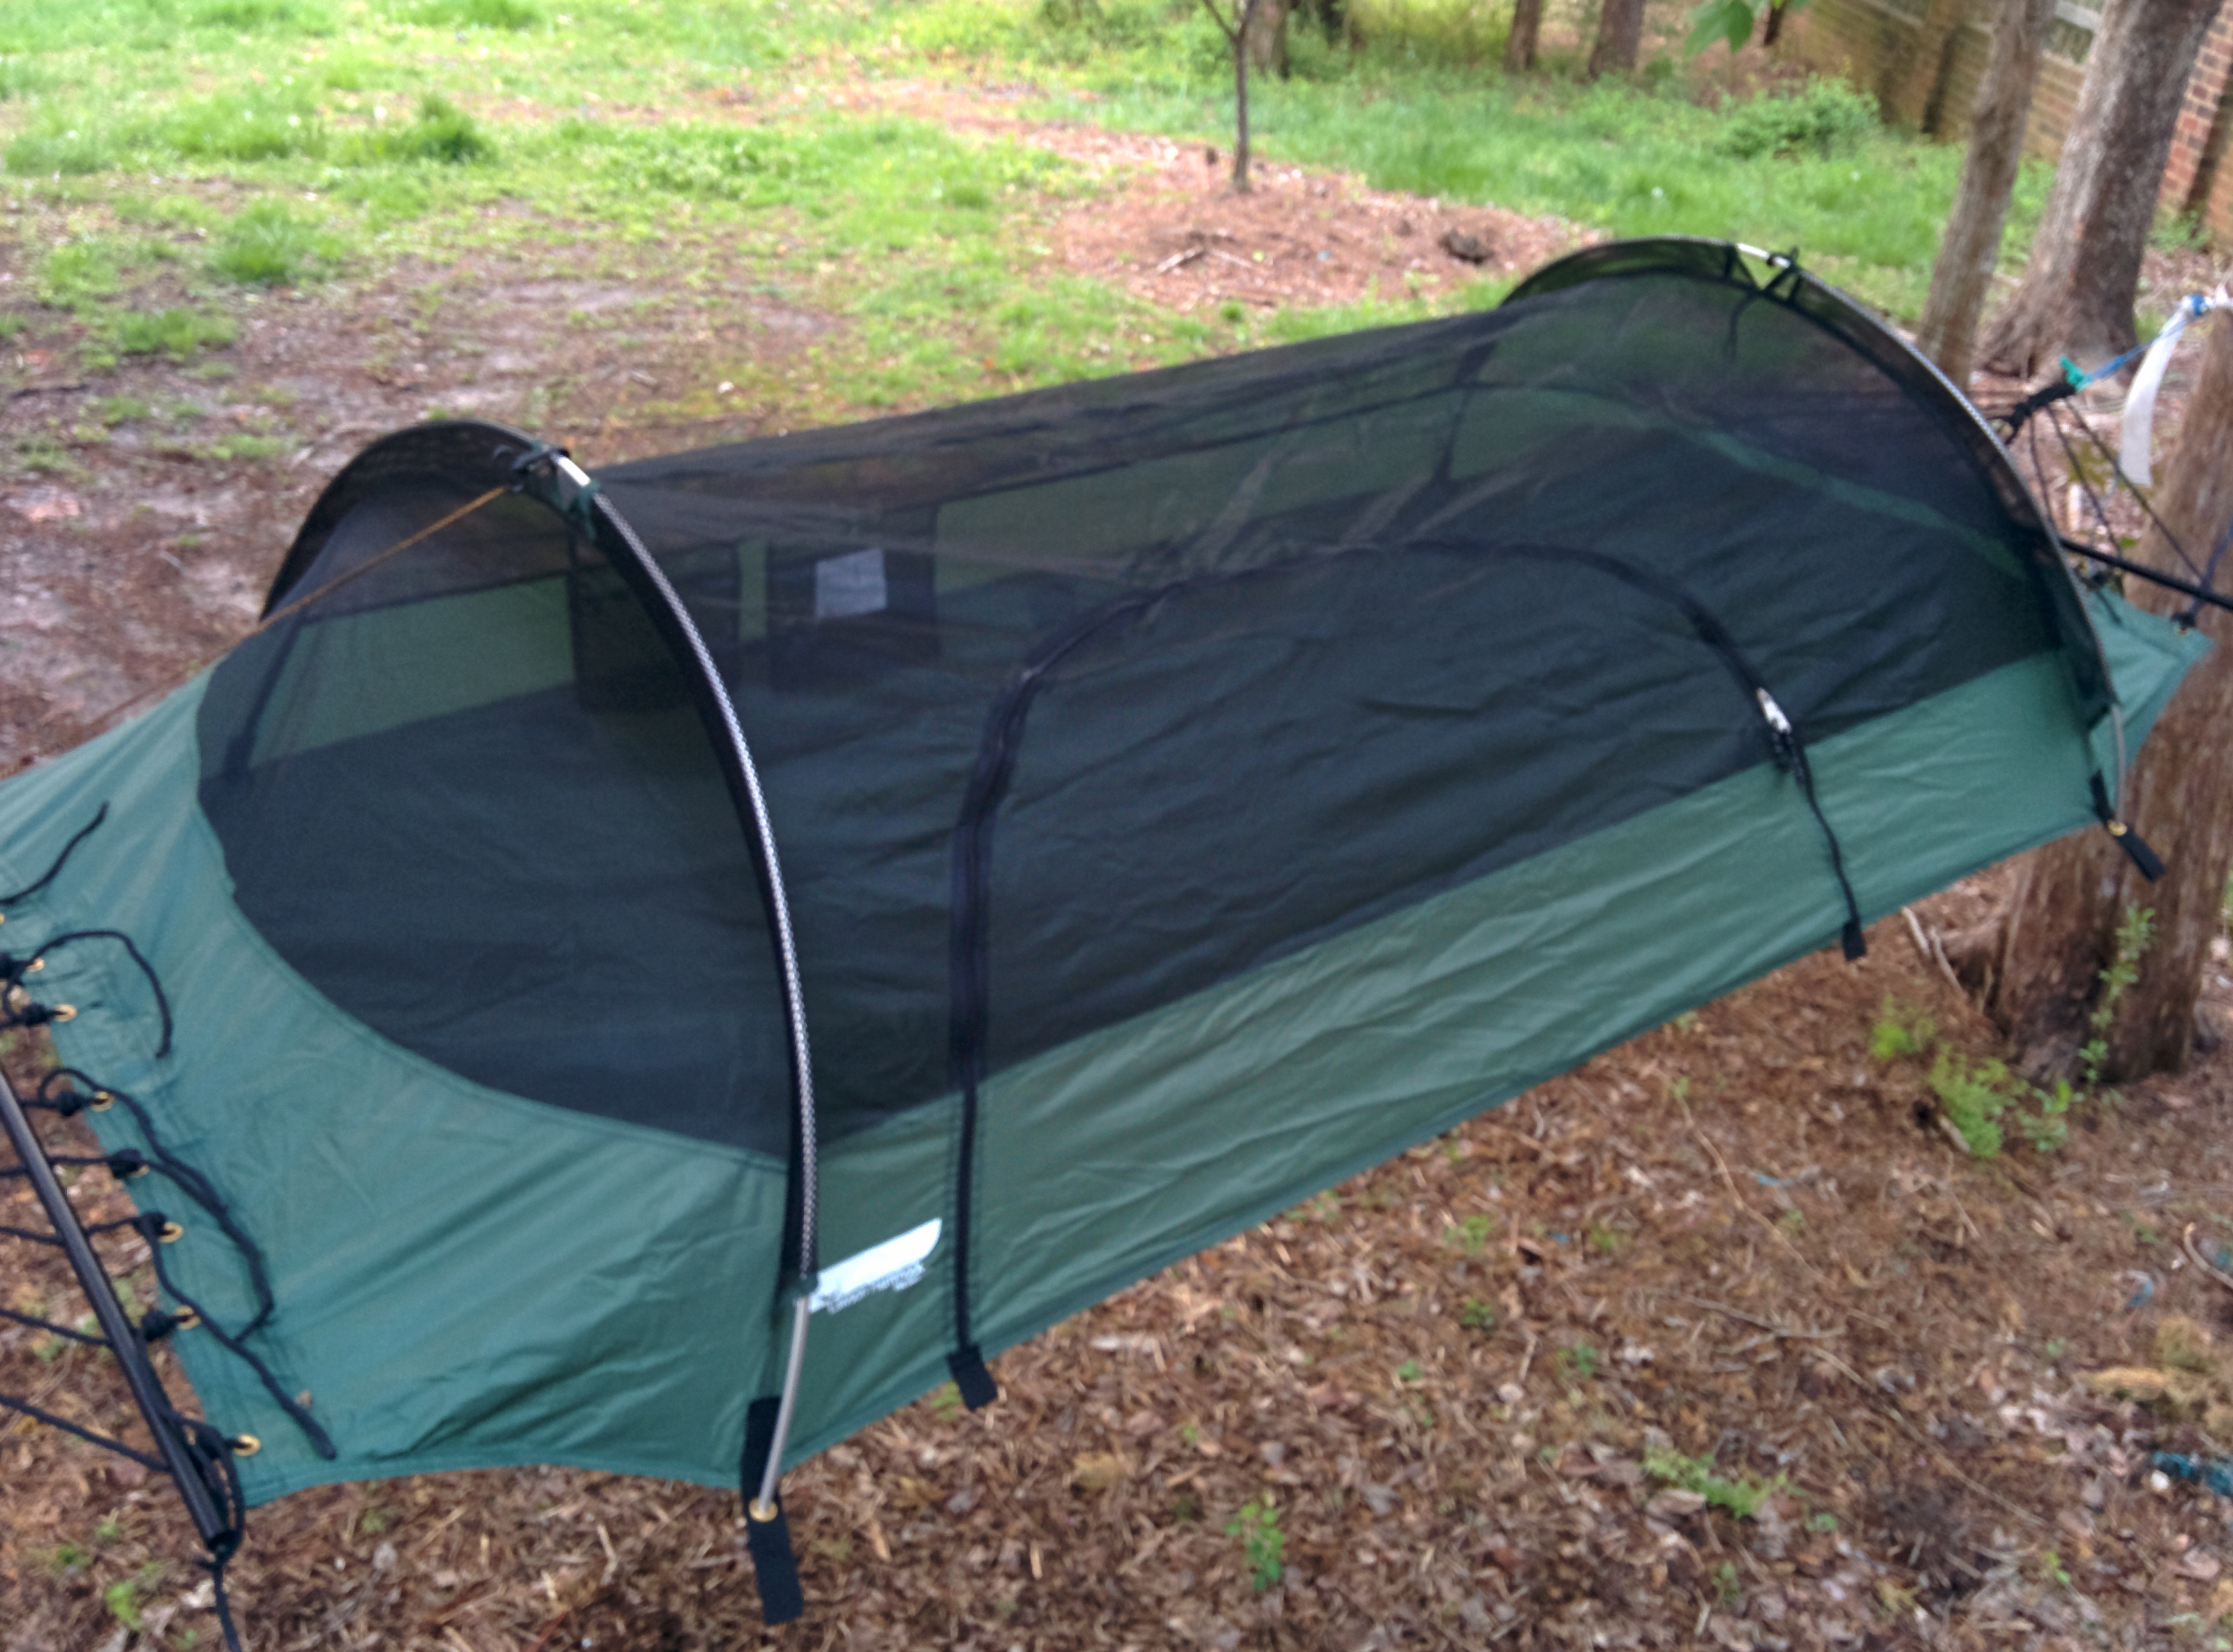 Blue Ridge C&ing Hammock - bug net & Lawson Hammock Blue Ridge Camping Hammock Long Term Review